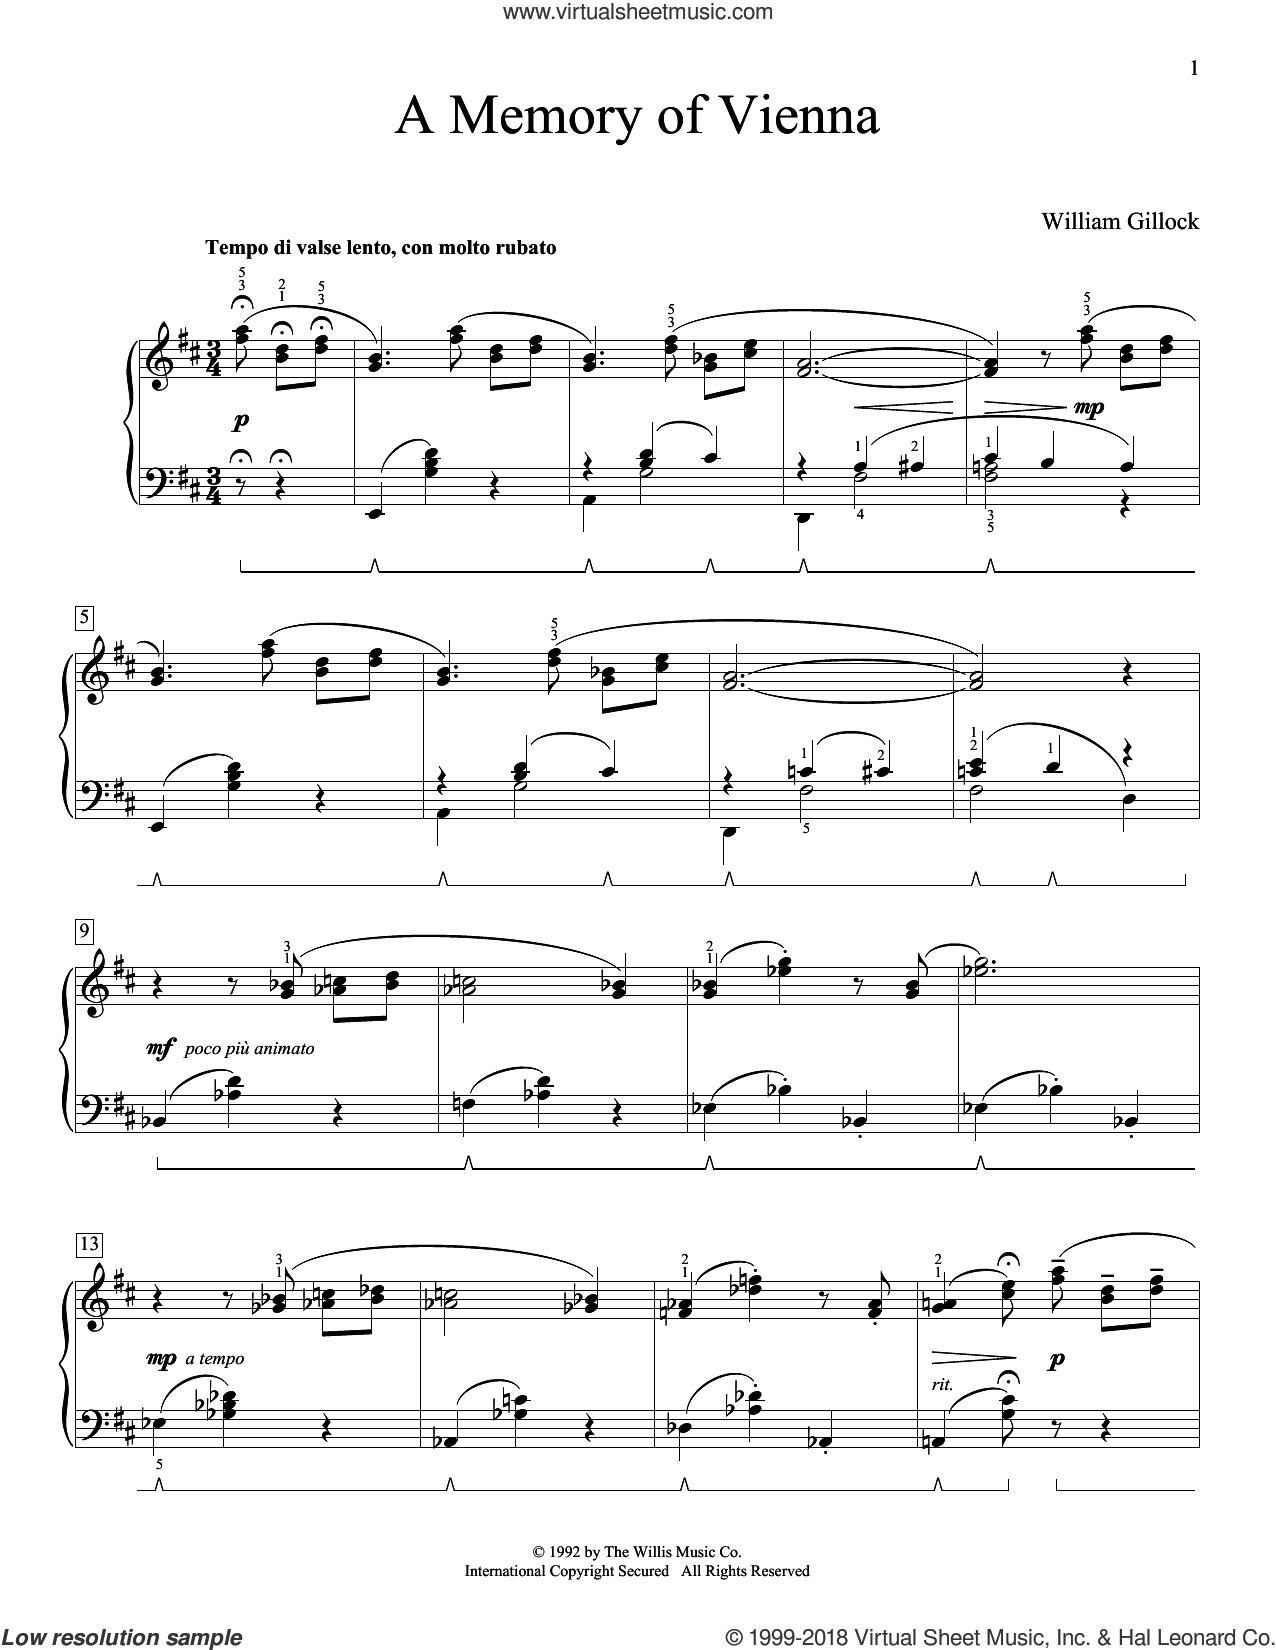 A Memory Of Vienna sheet music for piano solo (elementary) by William Gillock